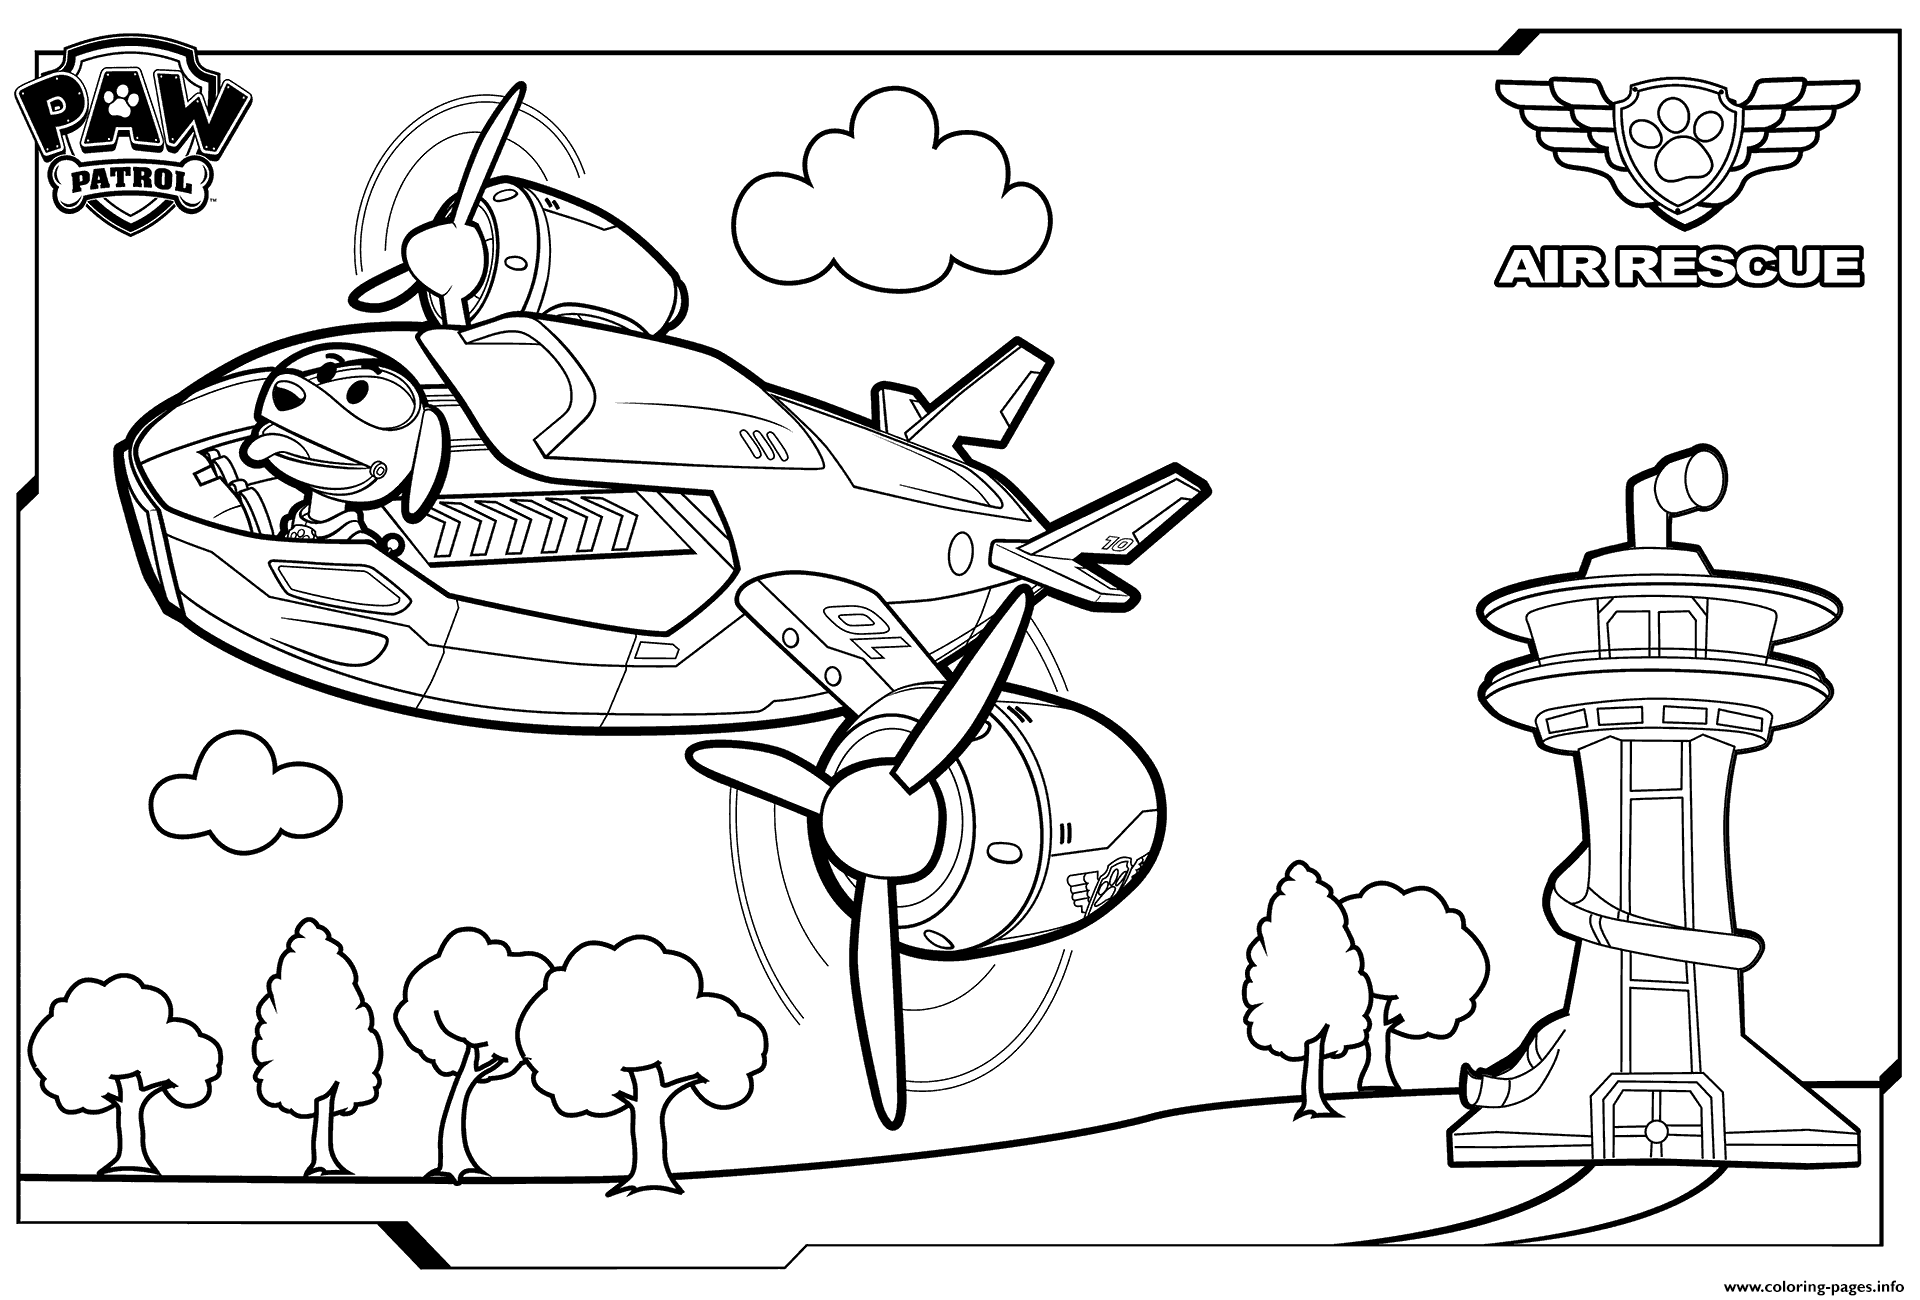 paw patrol boat coloring page boat color page coloring home coloring boat page patrol paw